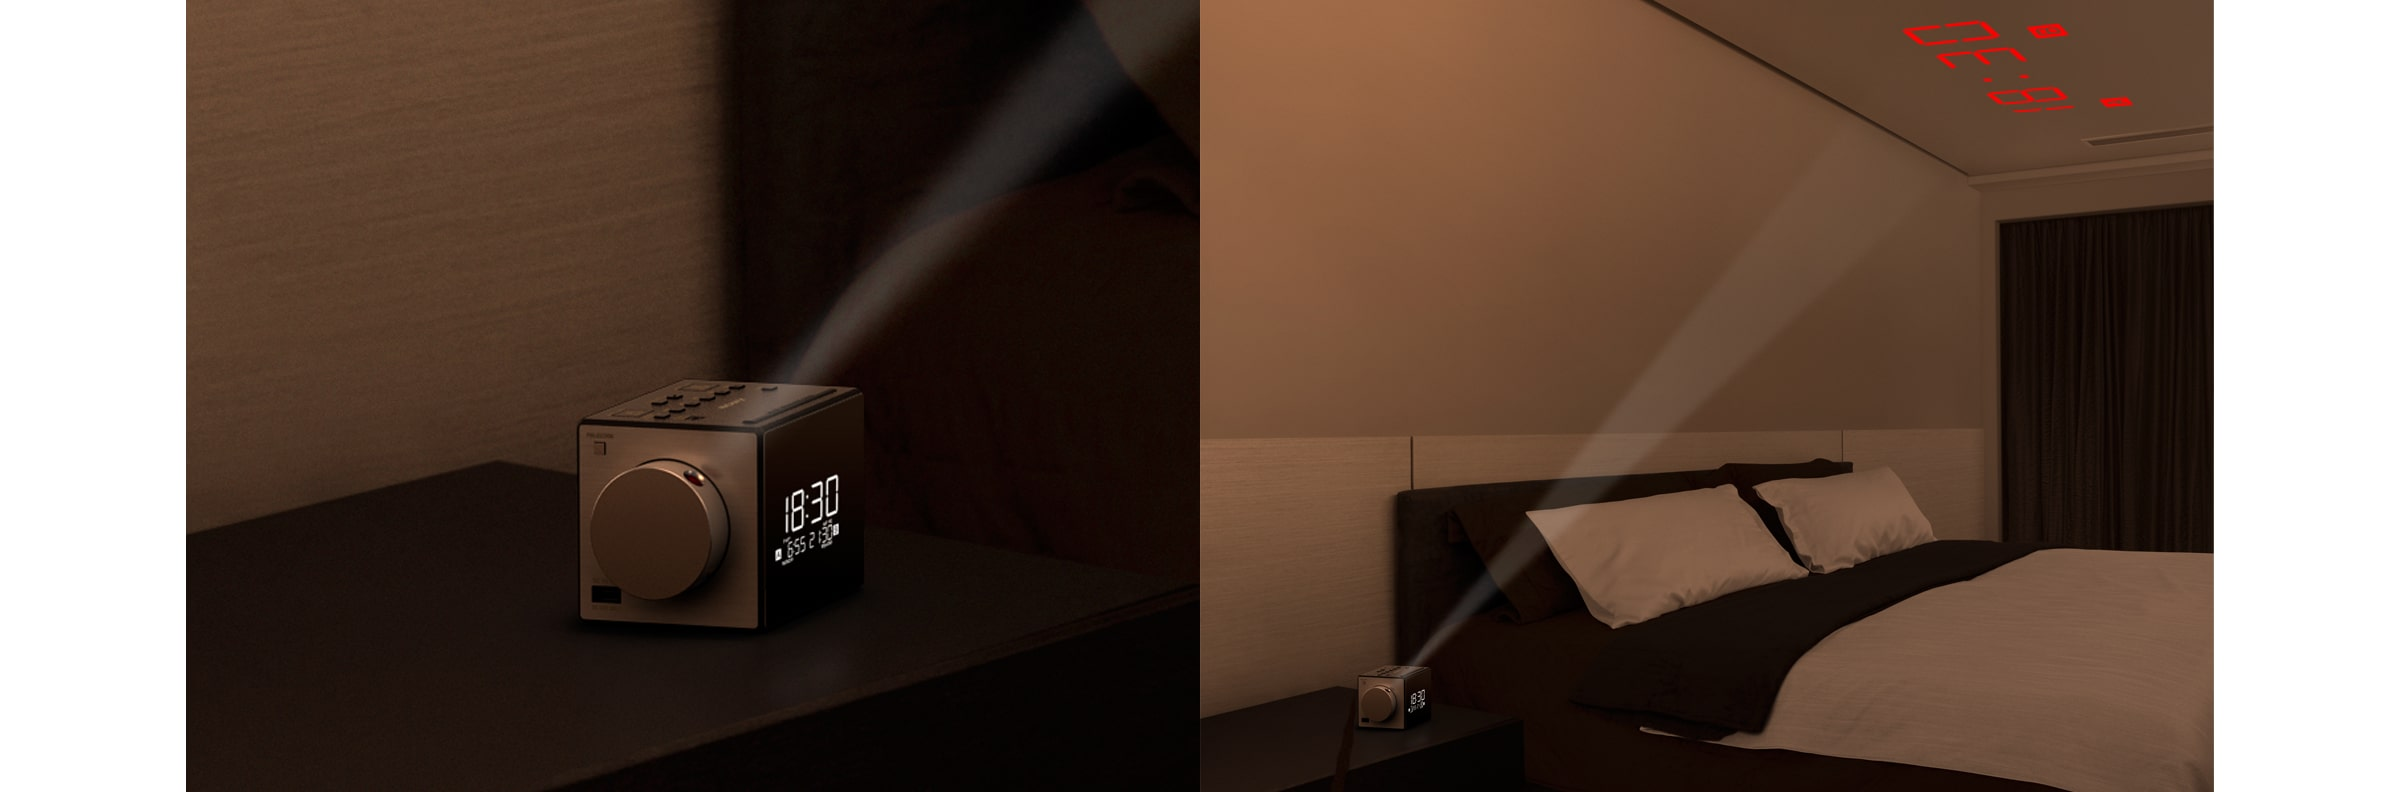 Clock Radio with Time Projector in action